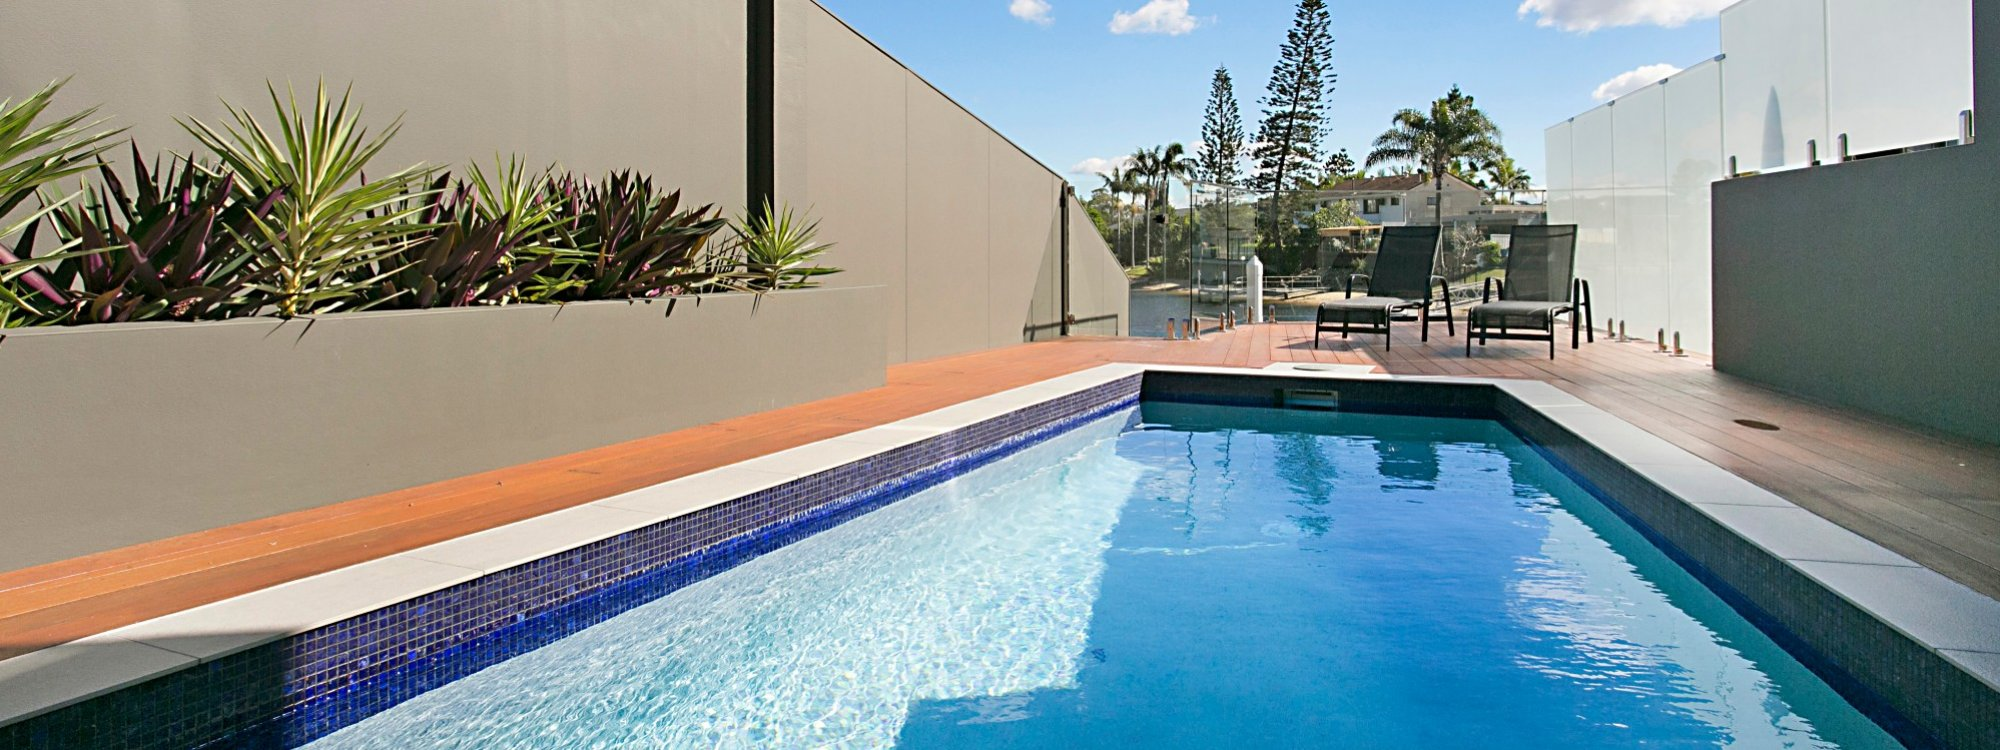 Ray Of Sunshine - Broadbeach Waters - Pool